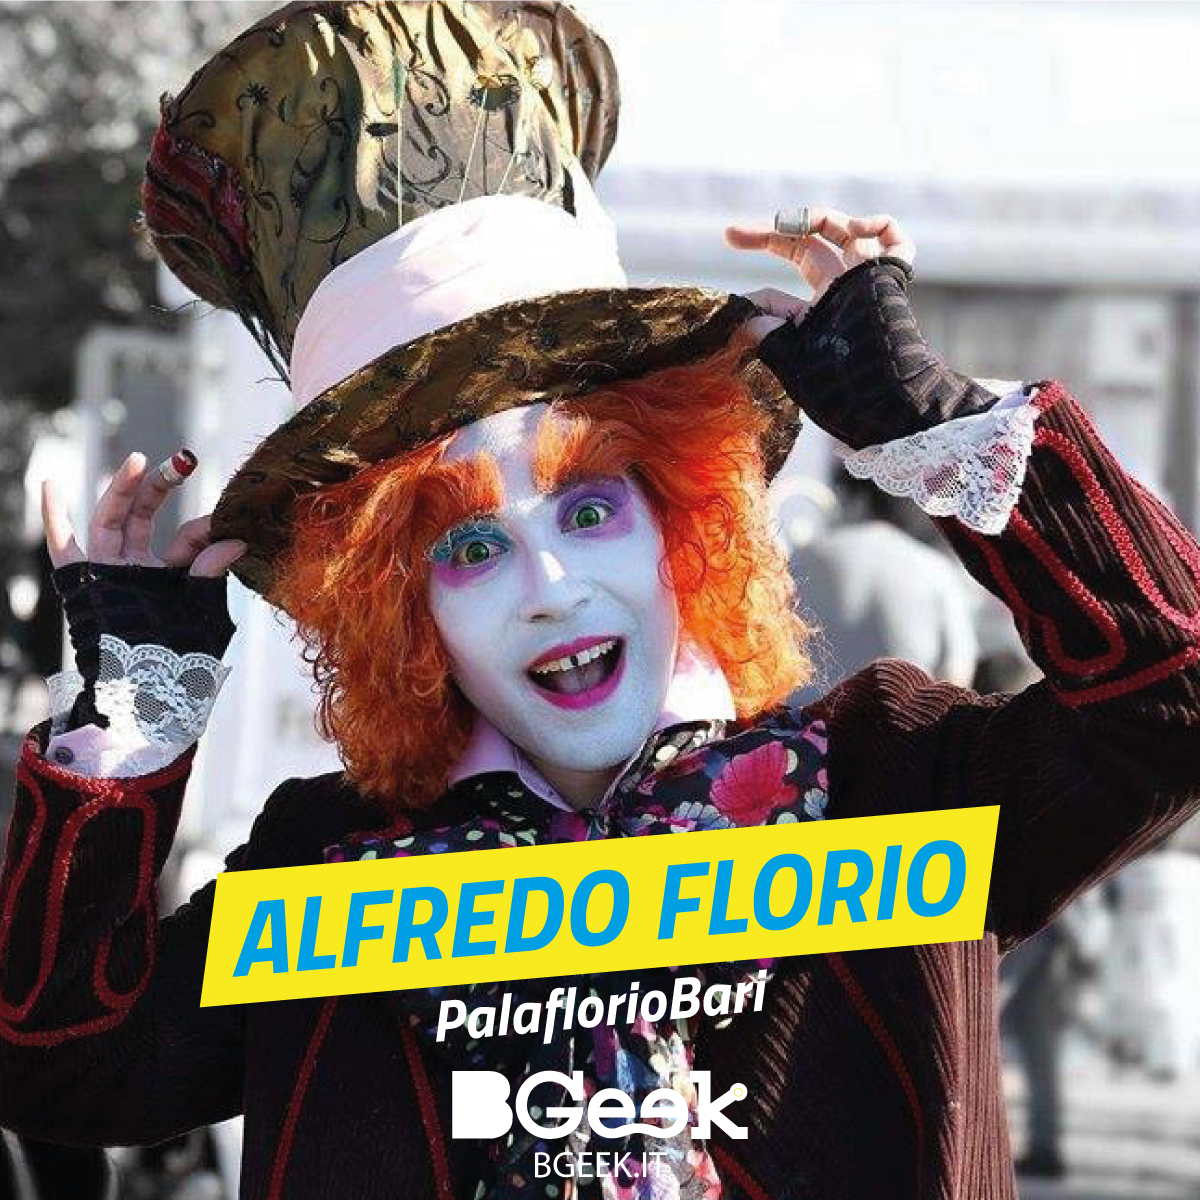 Bgeek_website_ospiti_1200x1200_Alfredo_florio